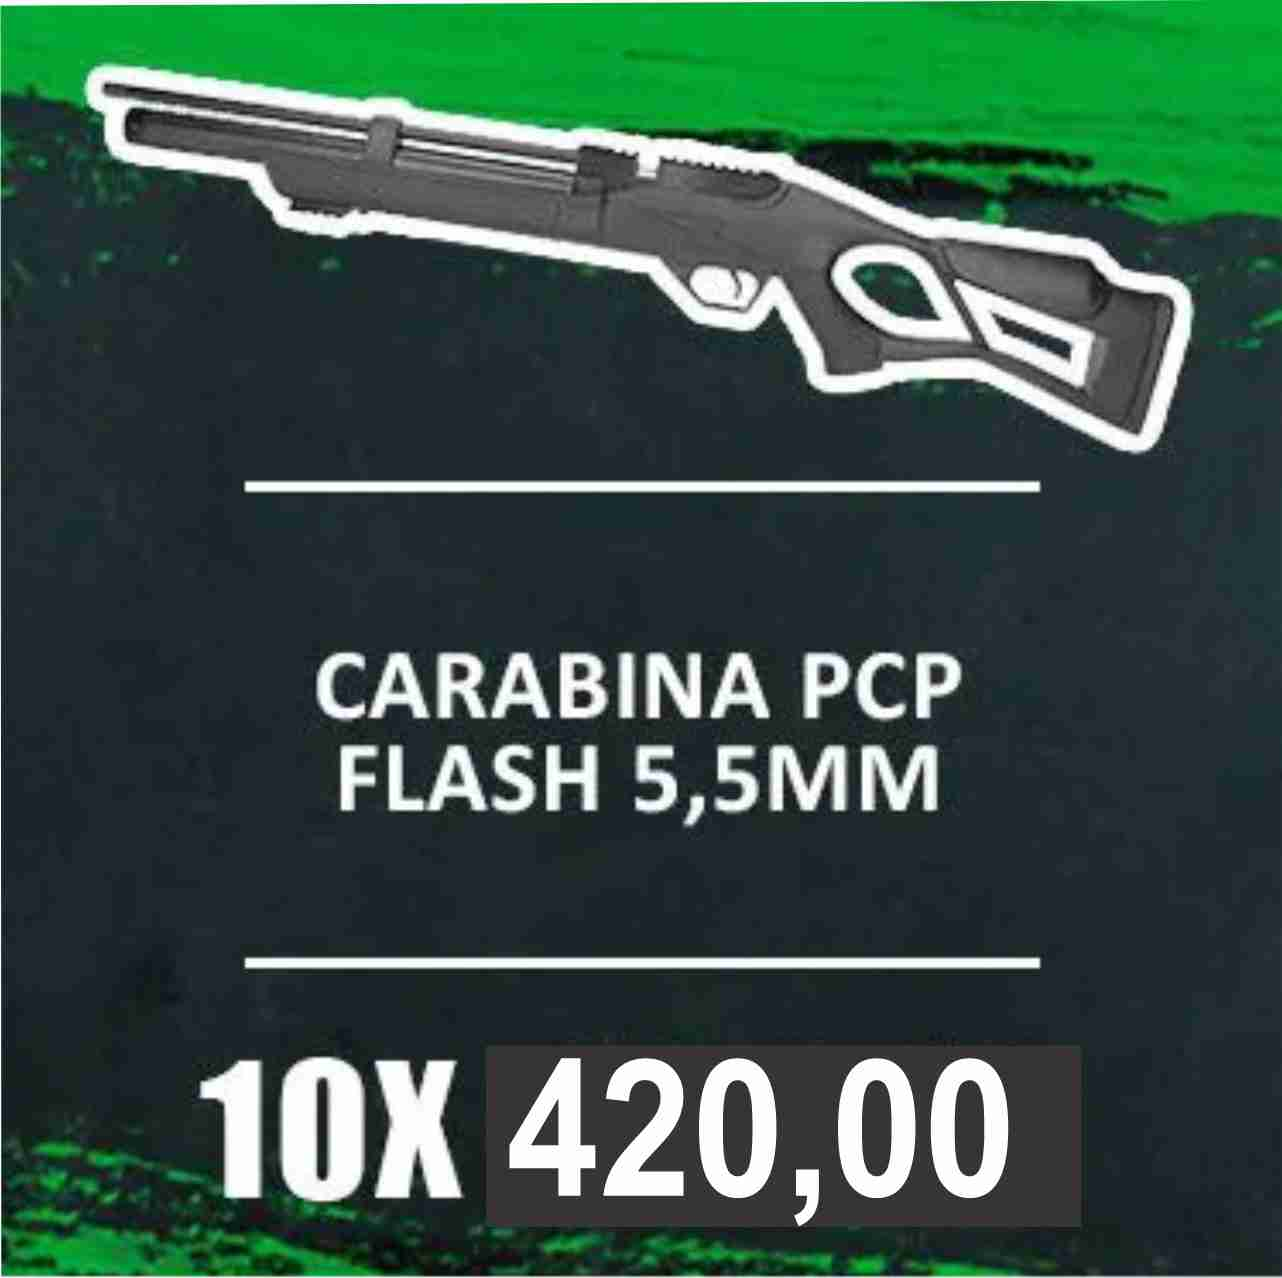 Consórcio - CARABINA PCP FLASH 5,5mm